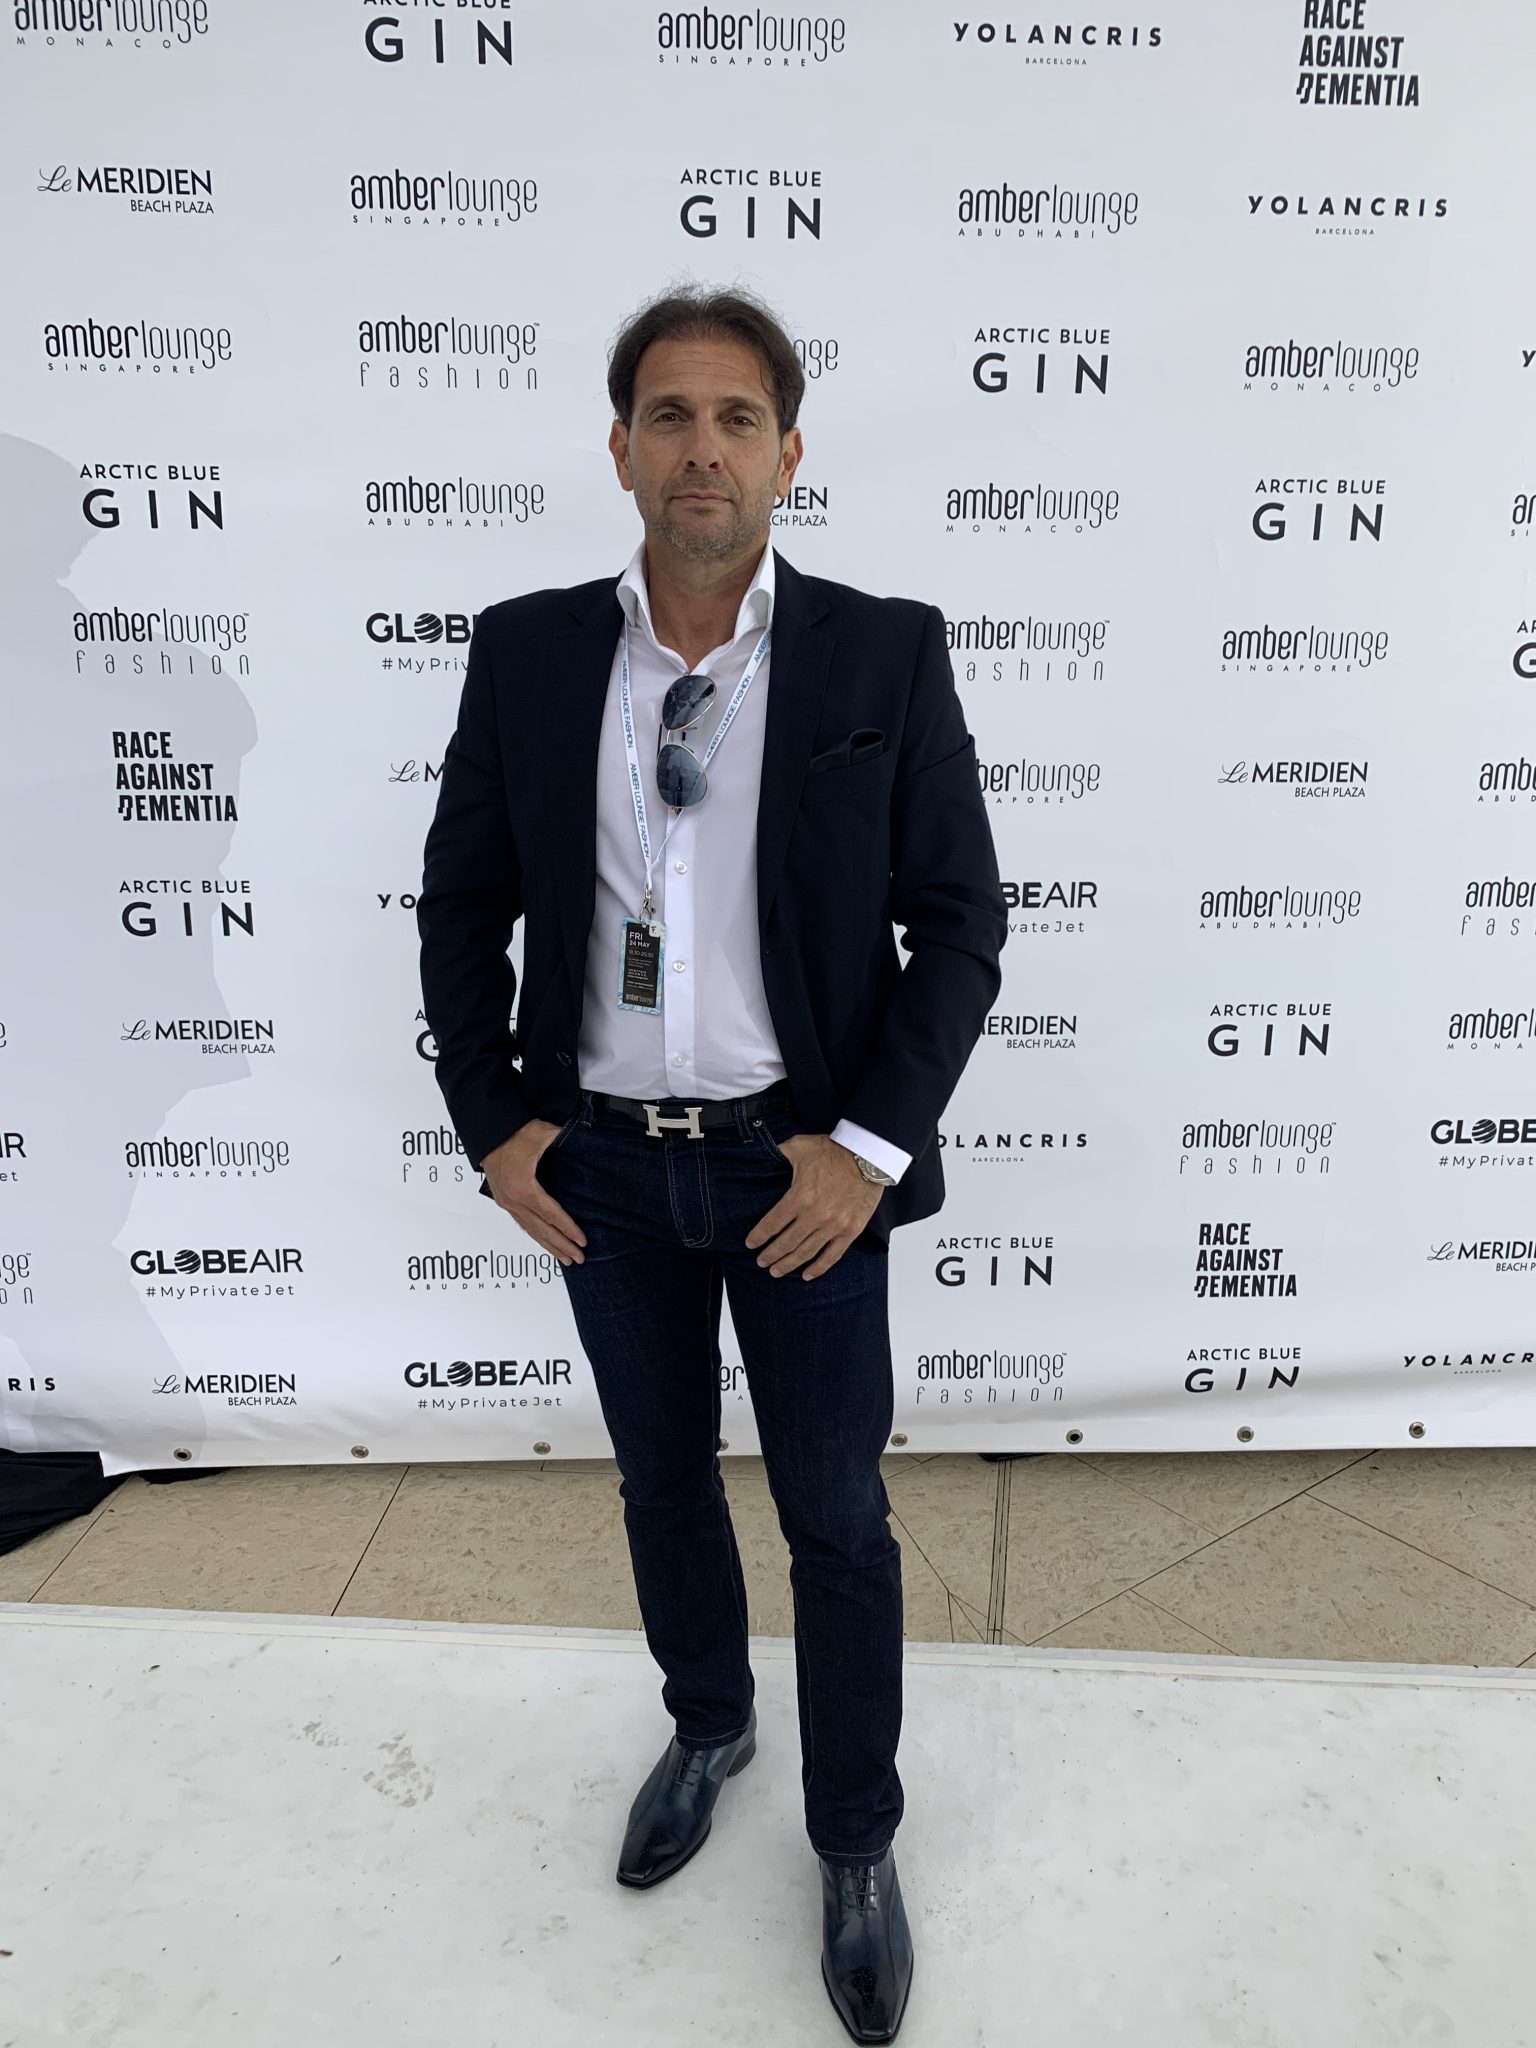 Eric Poirier at the Amber Lounge Charity Event in Monaco